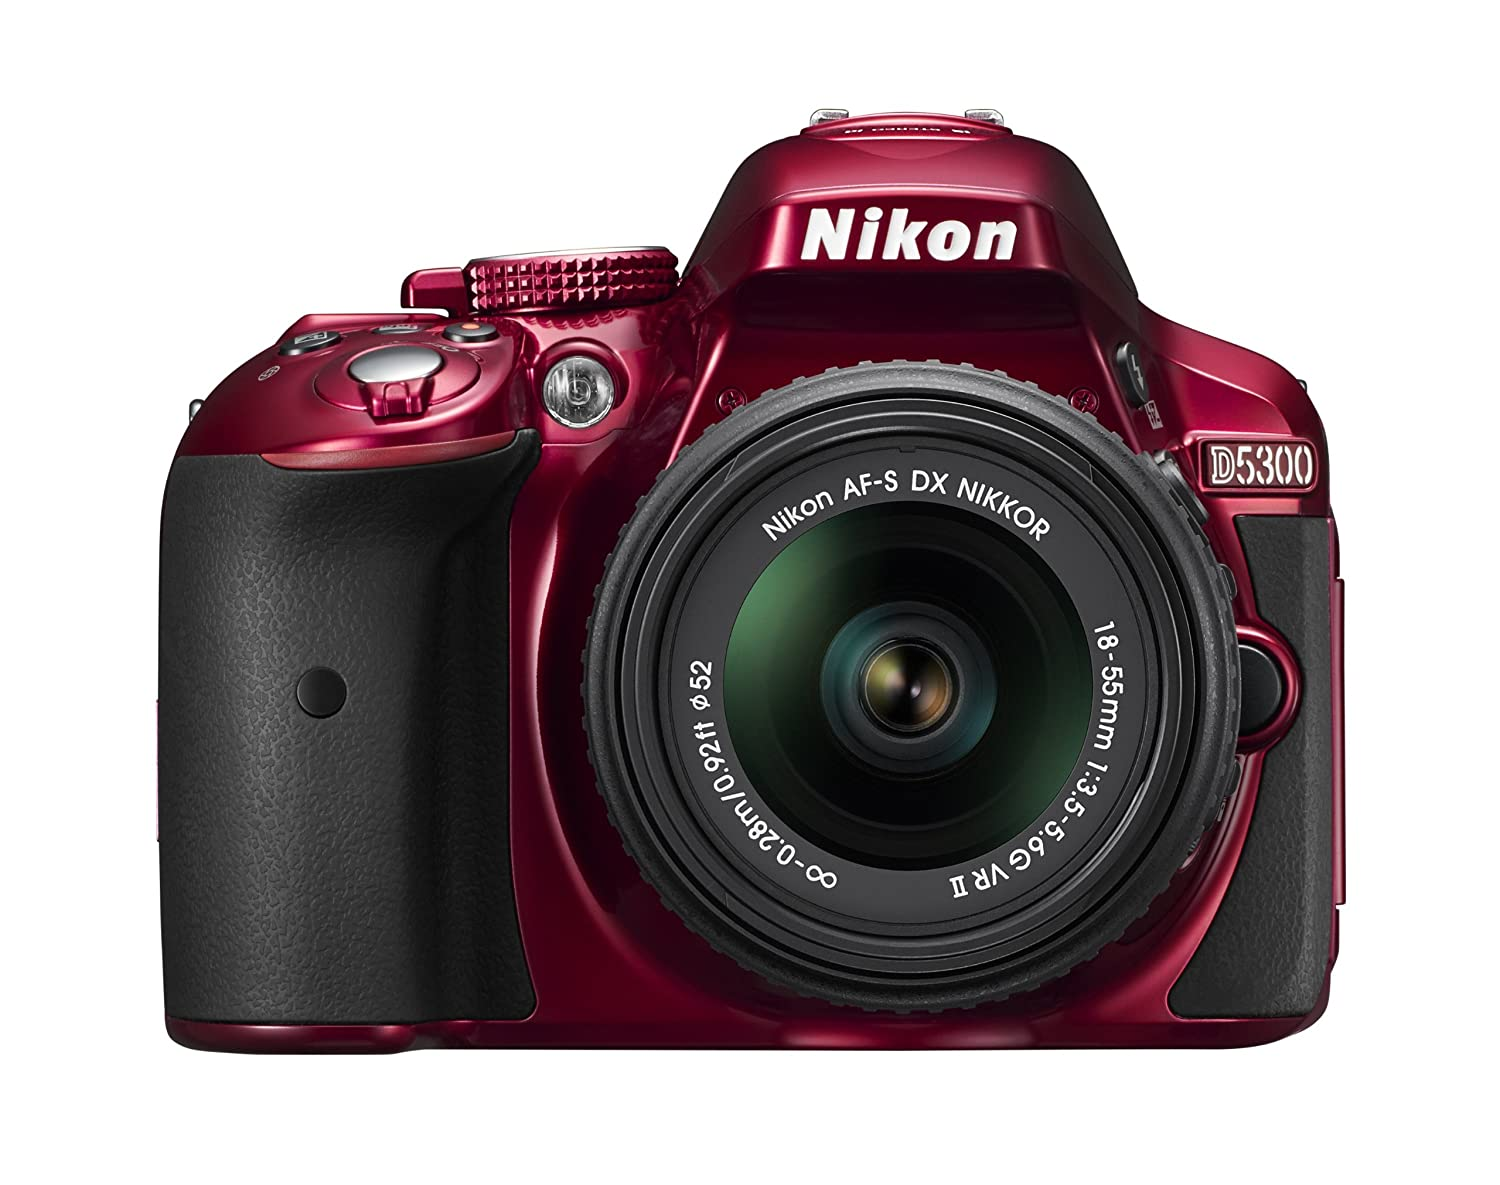 Nikon D5300 24.2 MP CMOS Digital SLR Camera with 18-55mm f/3.5-5.6G ED VR II Auto Focus-S DX NIKKOR Zoom Lens (Red)